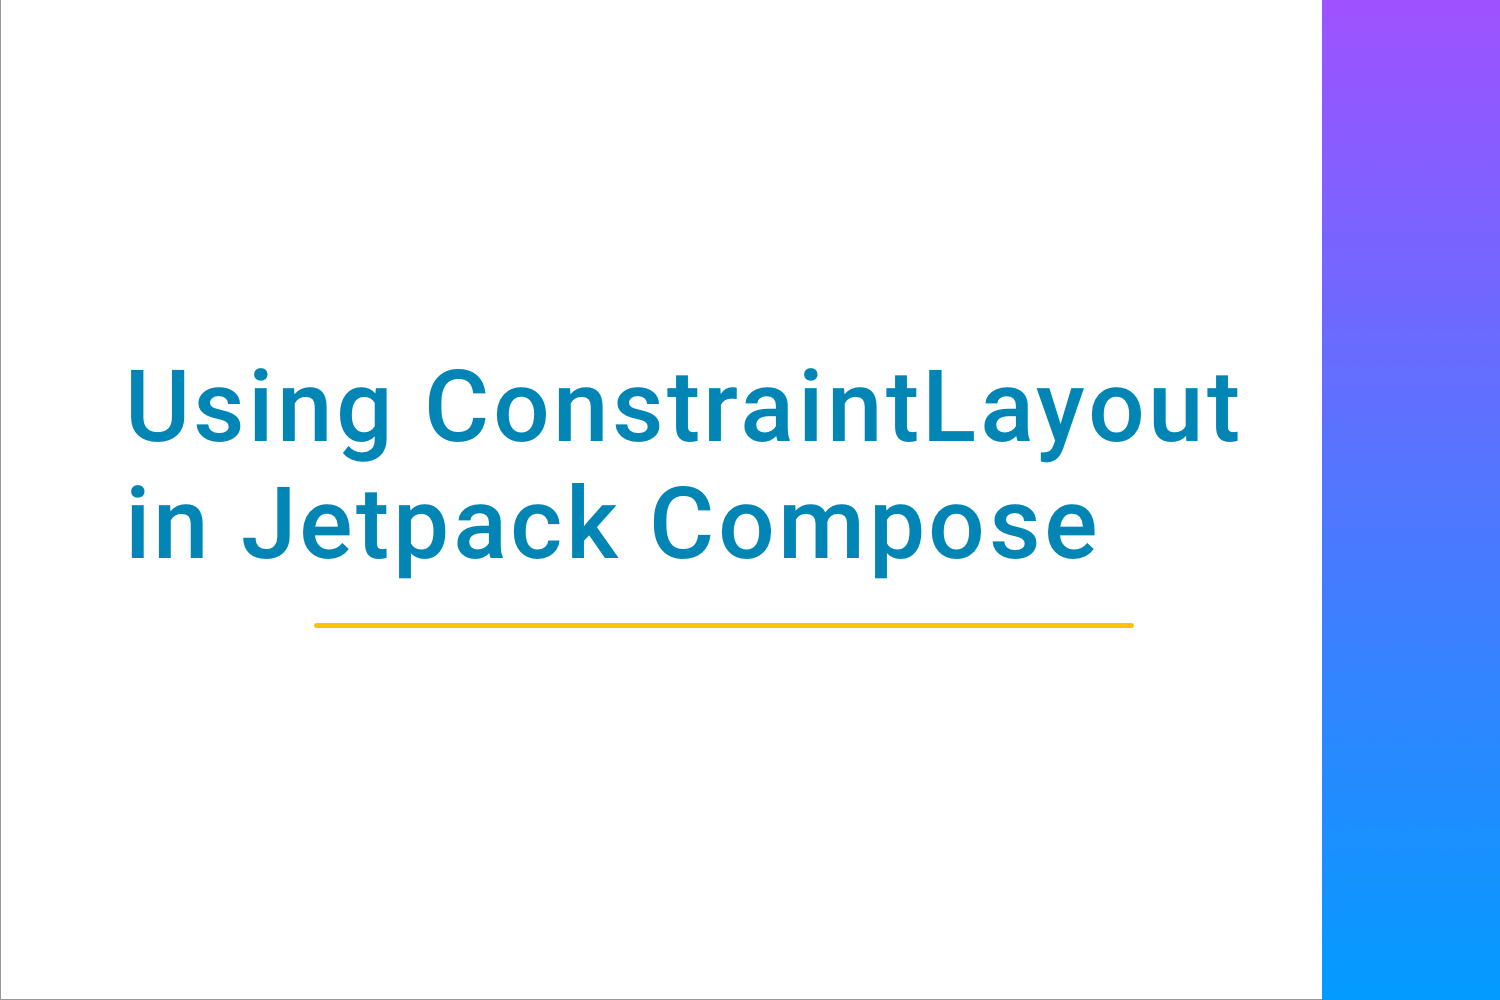 Using Constraint layout in Jetpack Compose